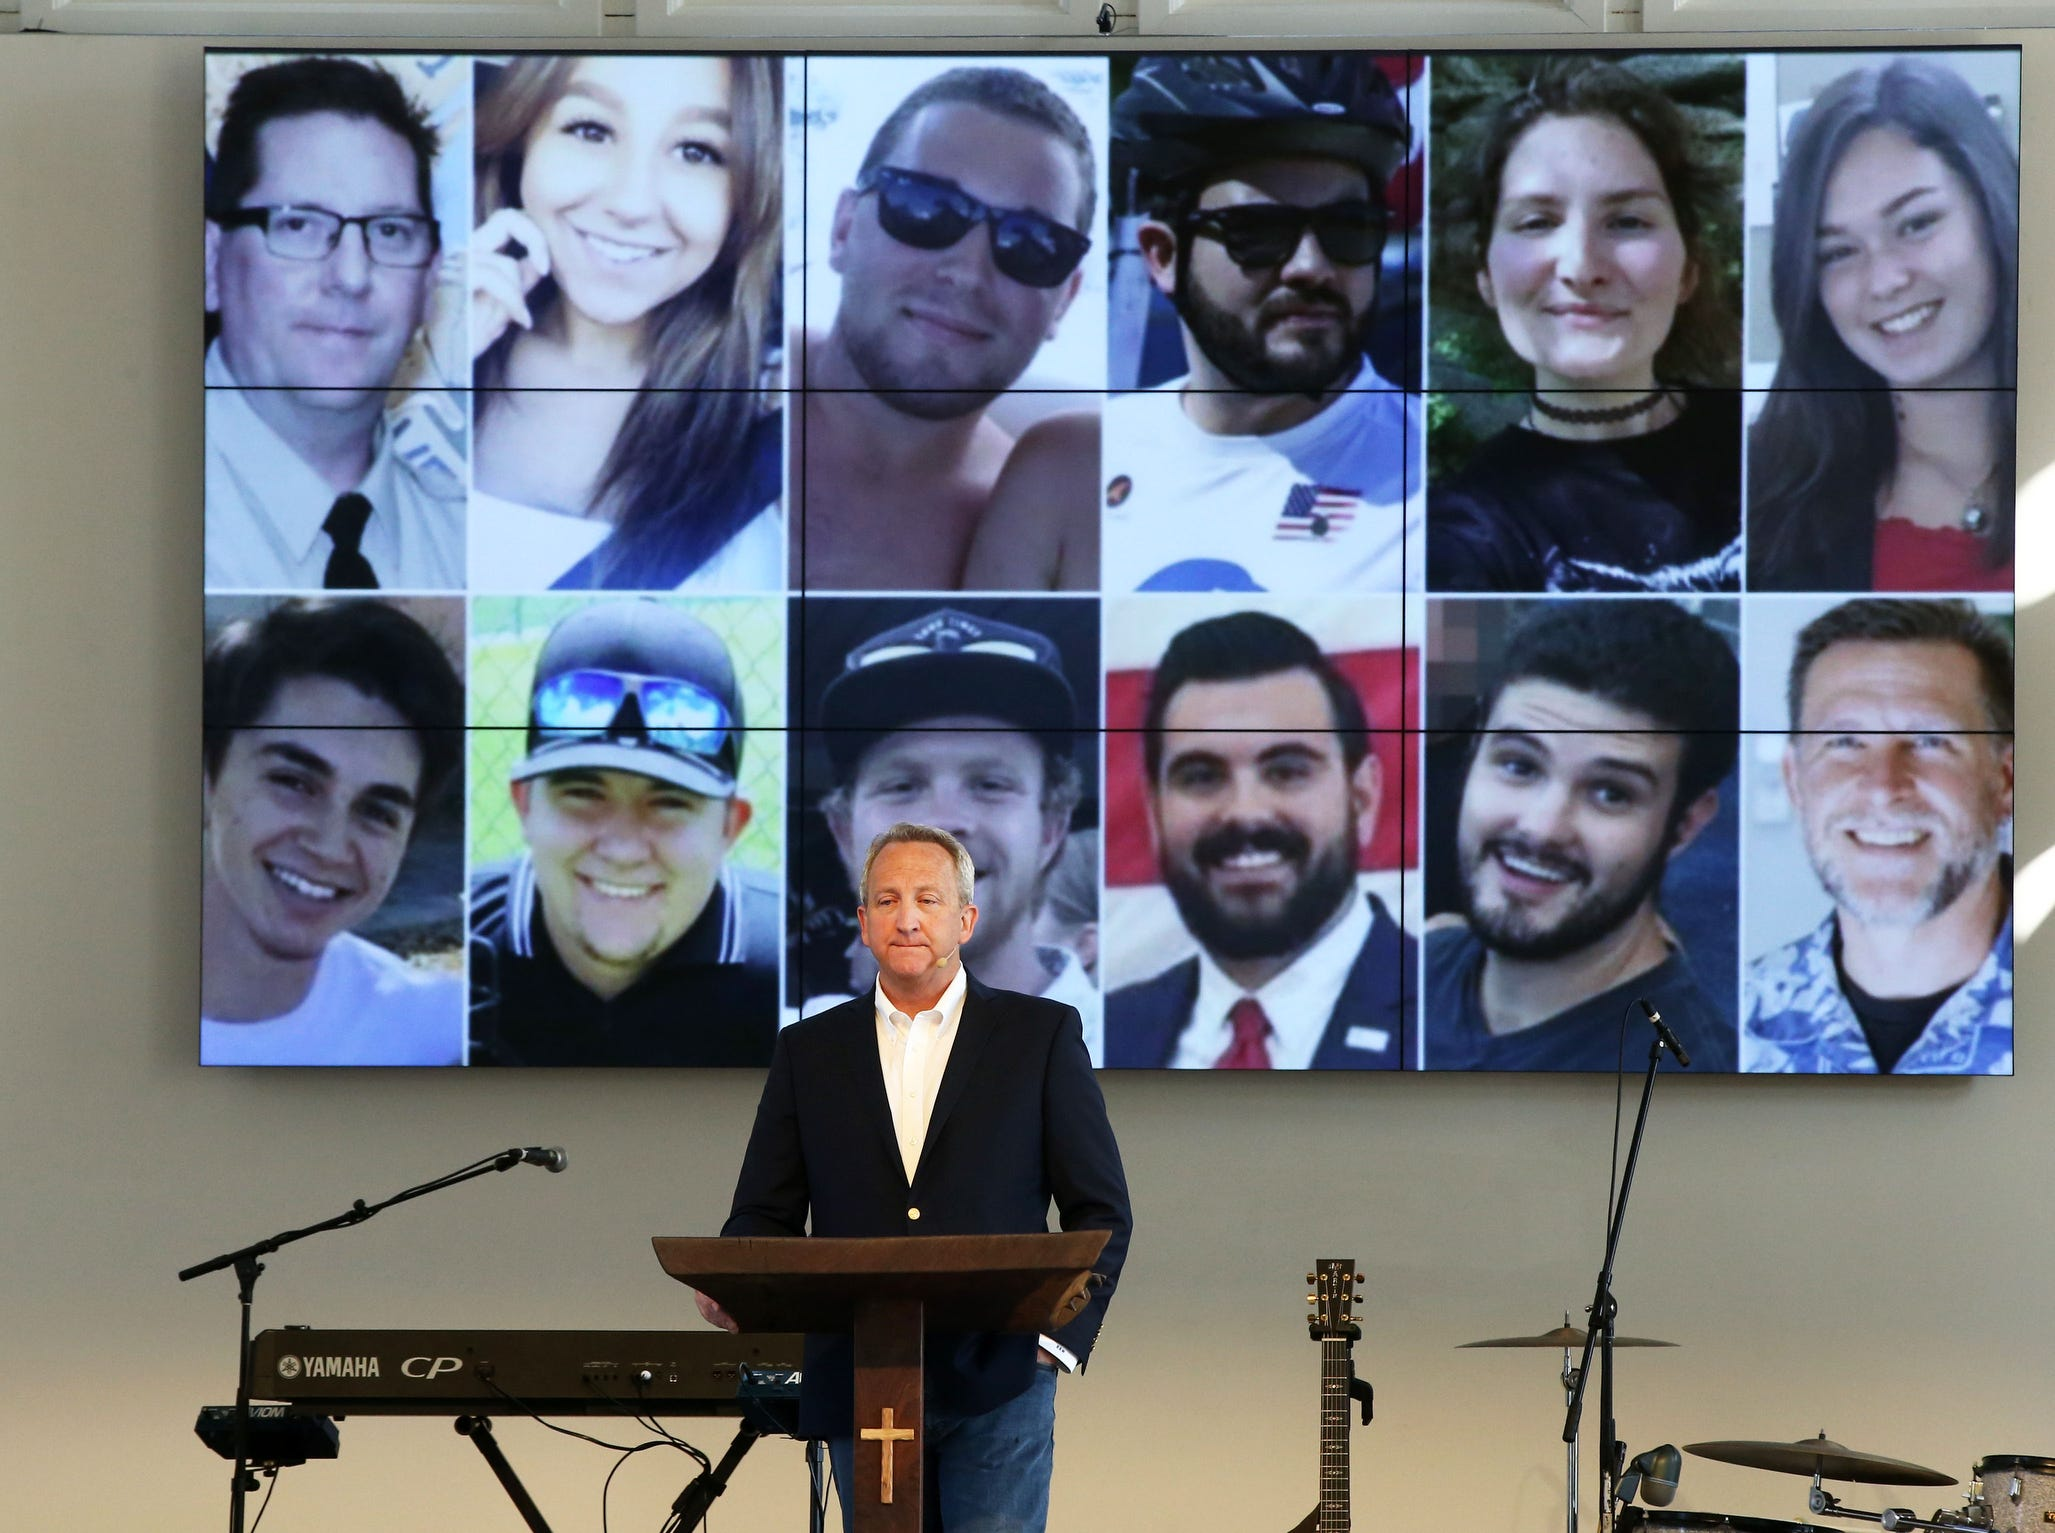 Pictures of the shooting victims at the Borderline Bar and Grill in Thousand Oaks, Calif. are shown in the sanctuary of Godspeak Calvary Chapel in Newbury Park, Calif., as councilman and pastor Rob McCoy speaks during the Sunday service.